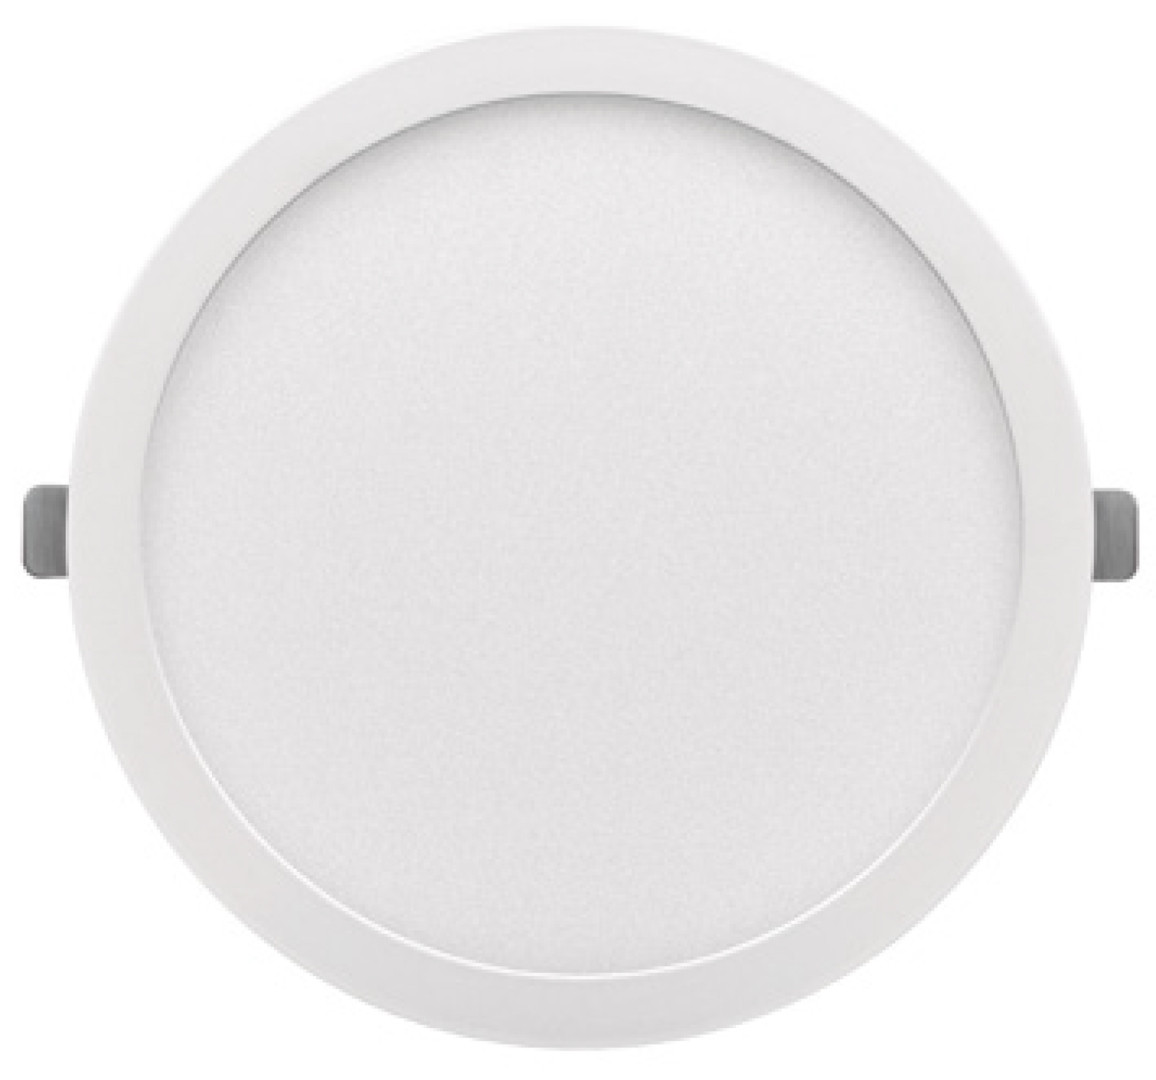 Downlight Led redondo empotrable o superficie Monet blanco 18W 6000°K 215x13mm. (ALG 67652)